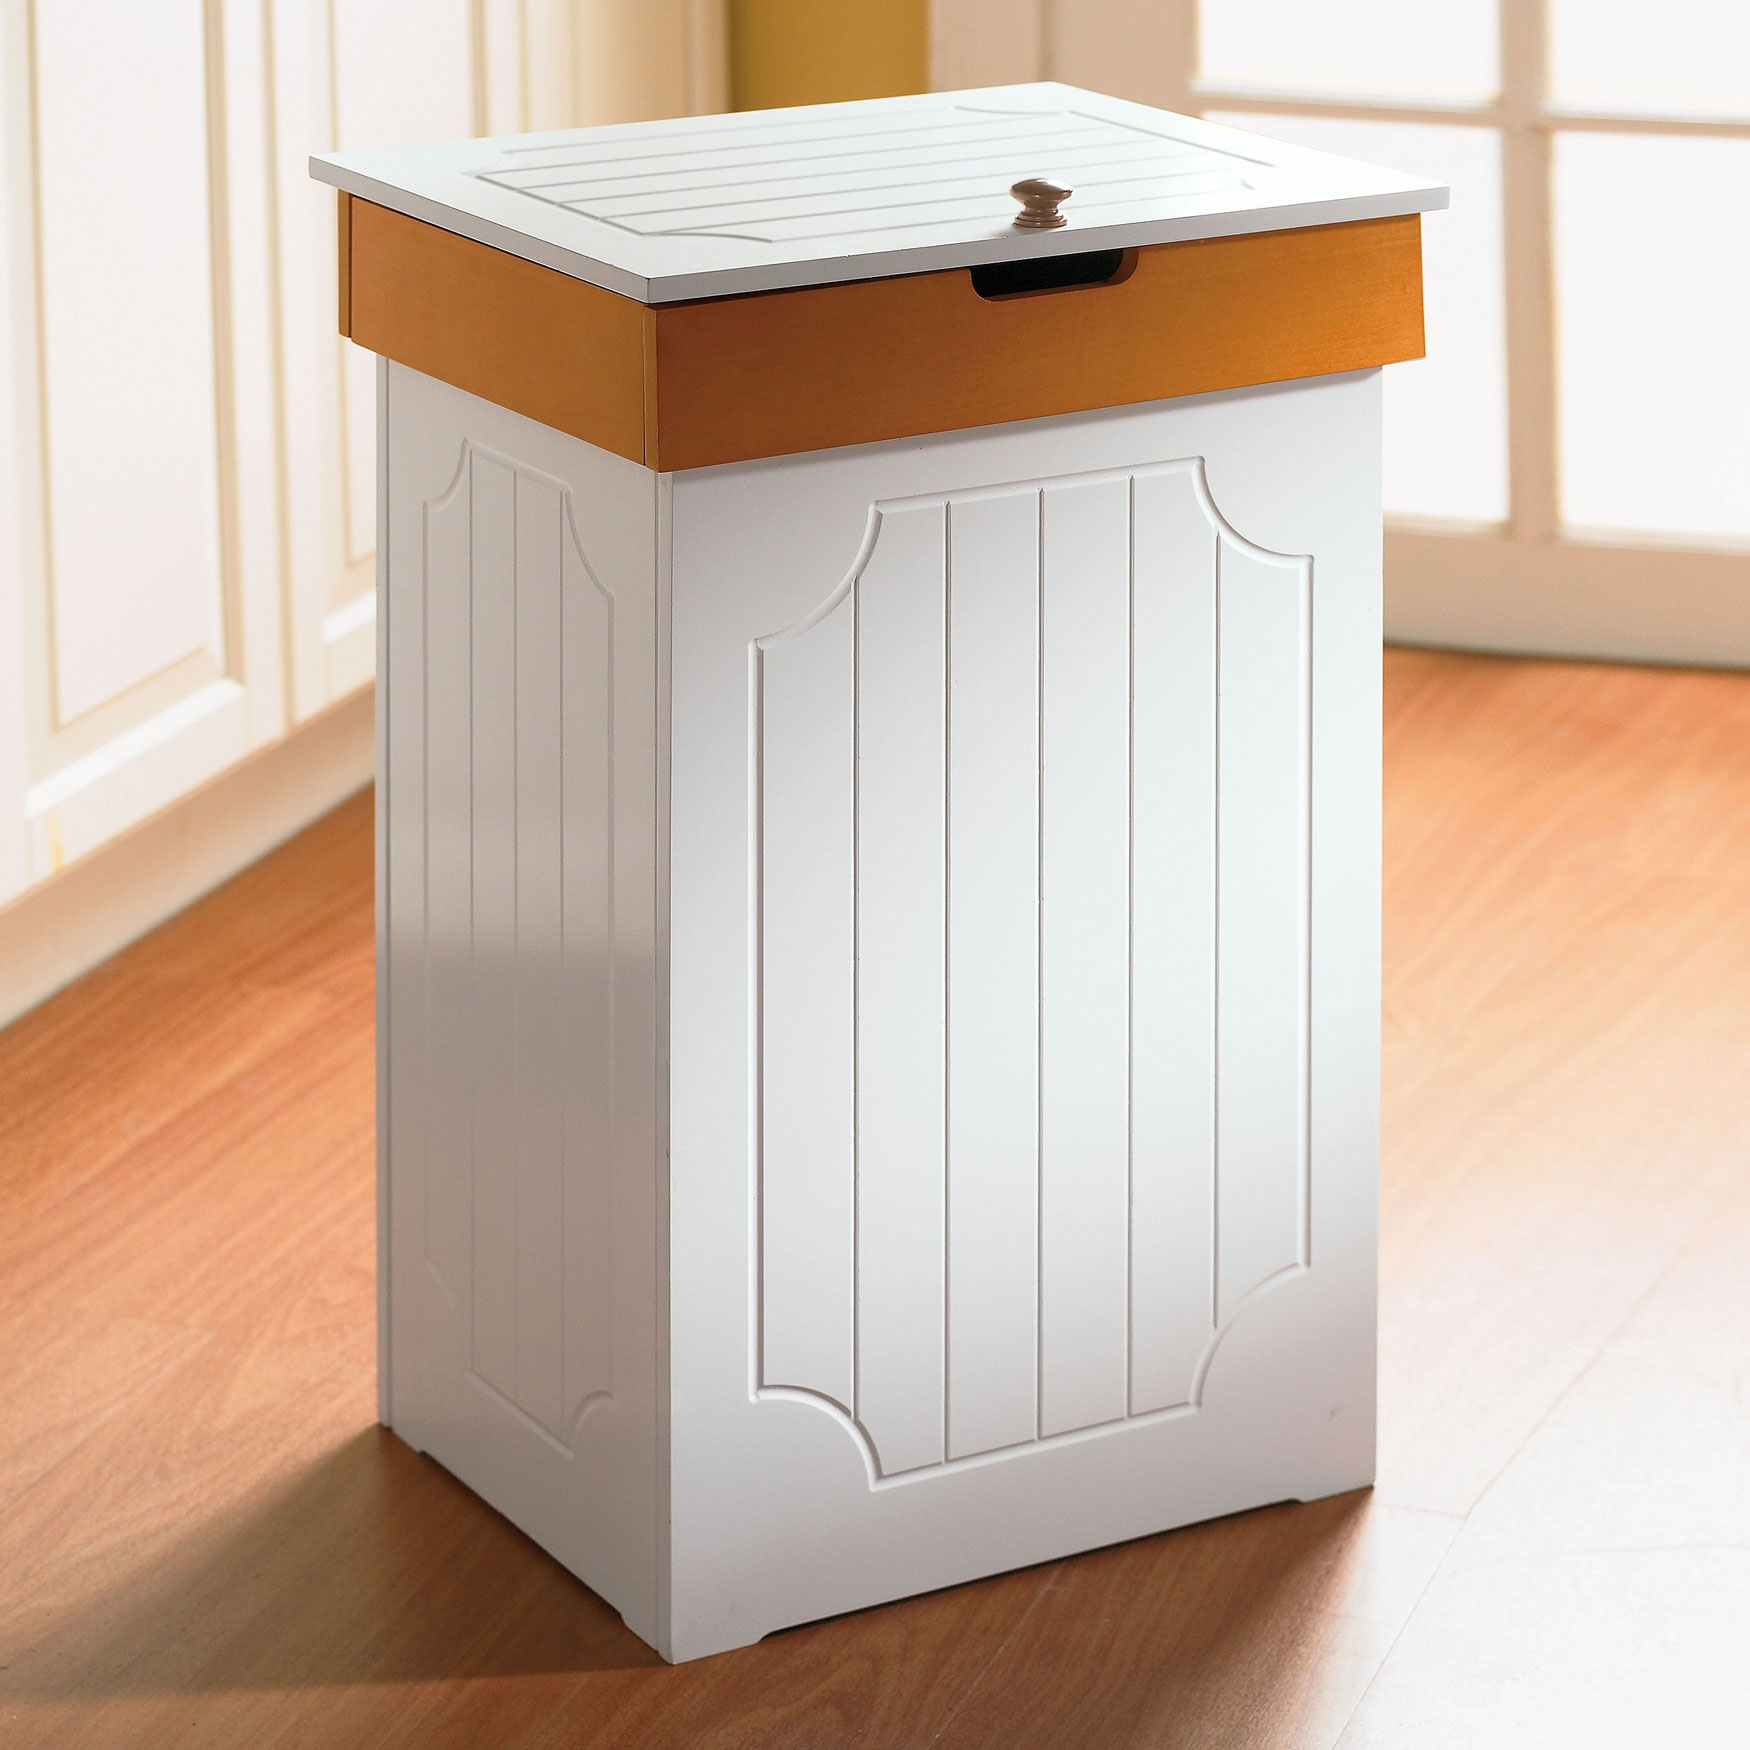 Decorative Wooden Kitchen Trash Containers